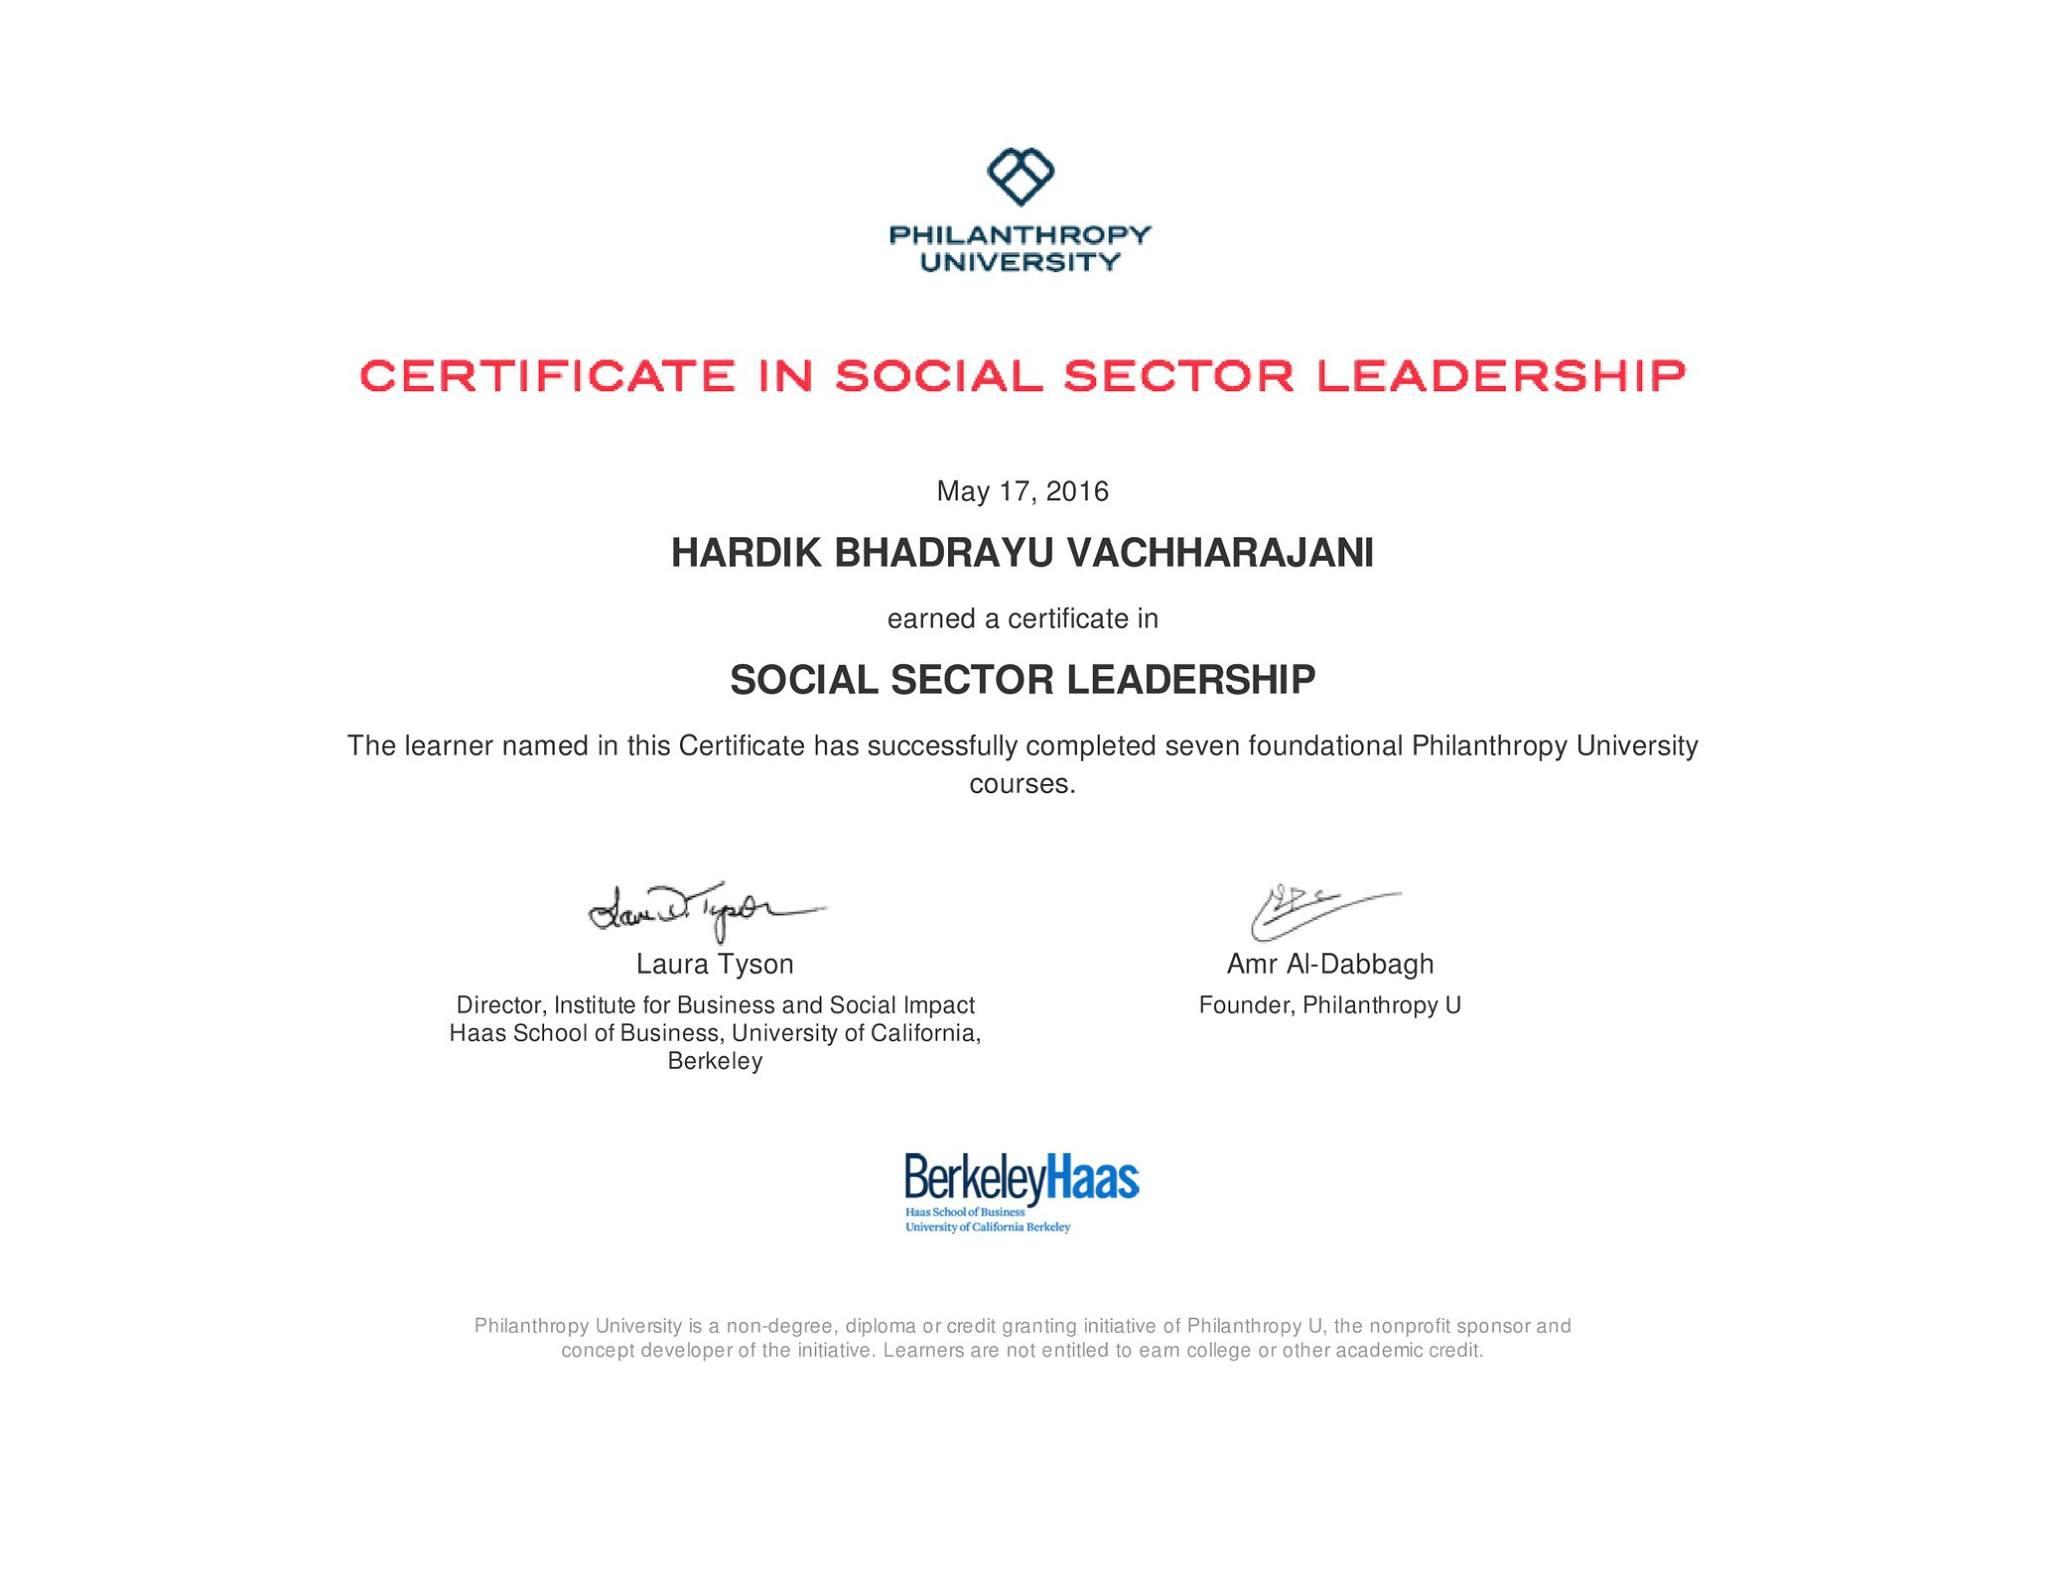 Certificate In Social Sector Leadership From Berkeley Hass Dr